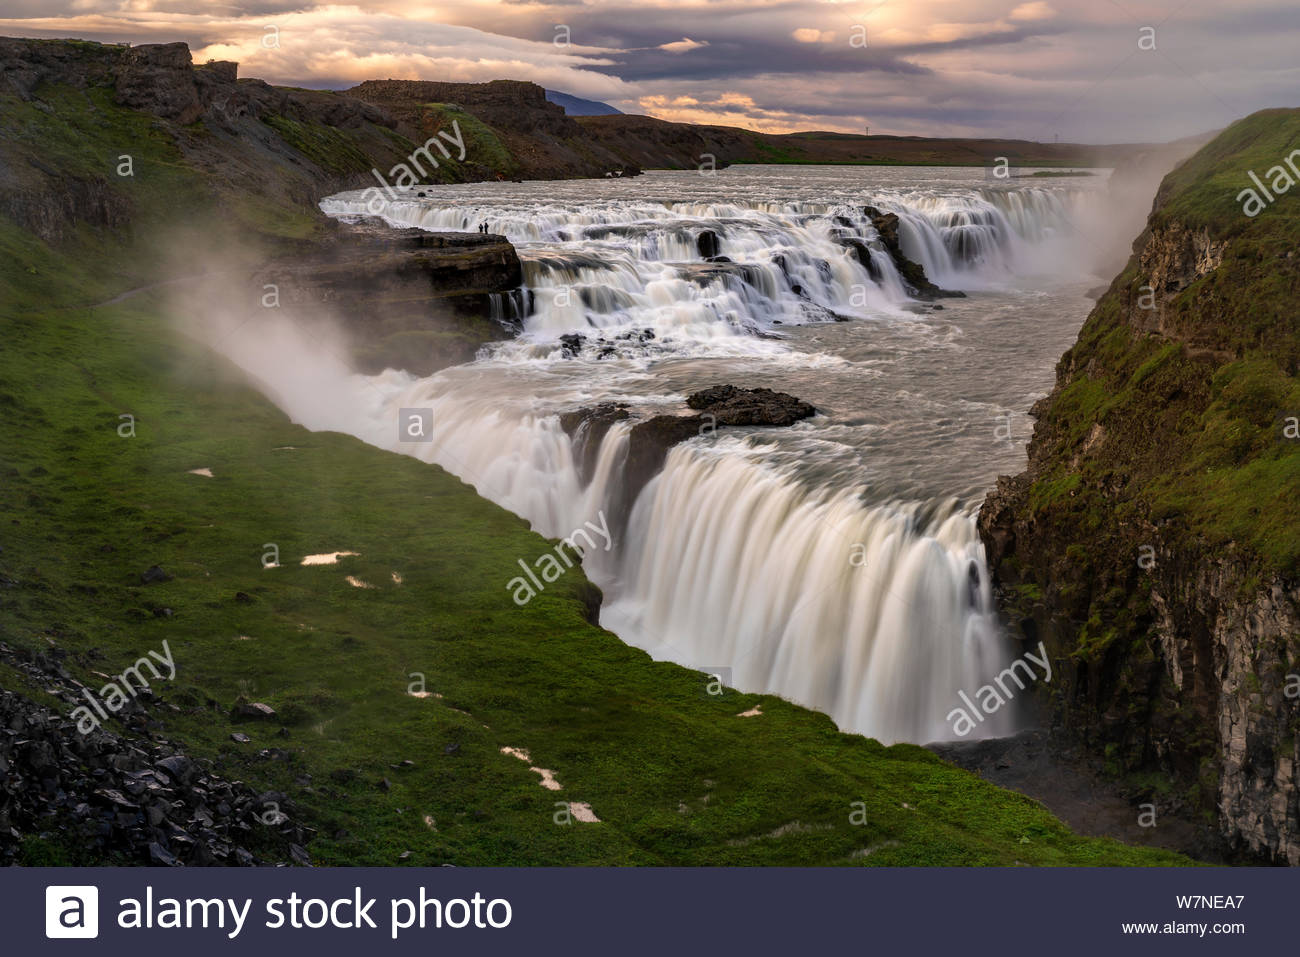 iceland-gullfoss-waterfalls-at-sunset-W7